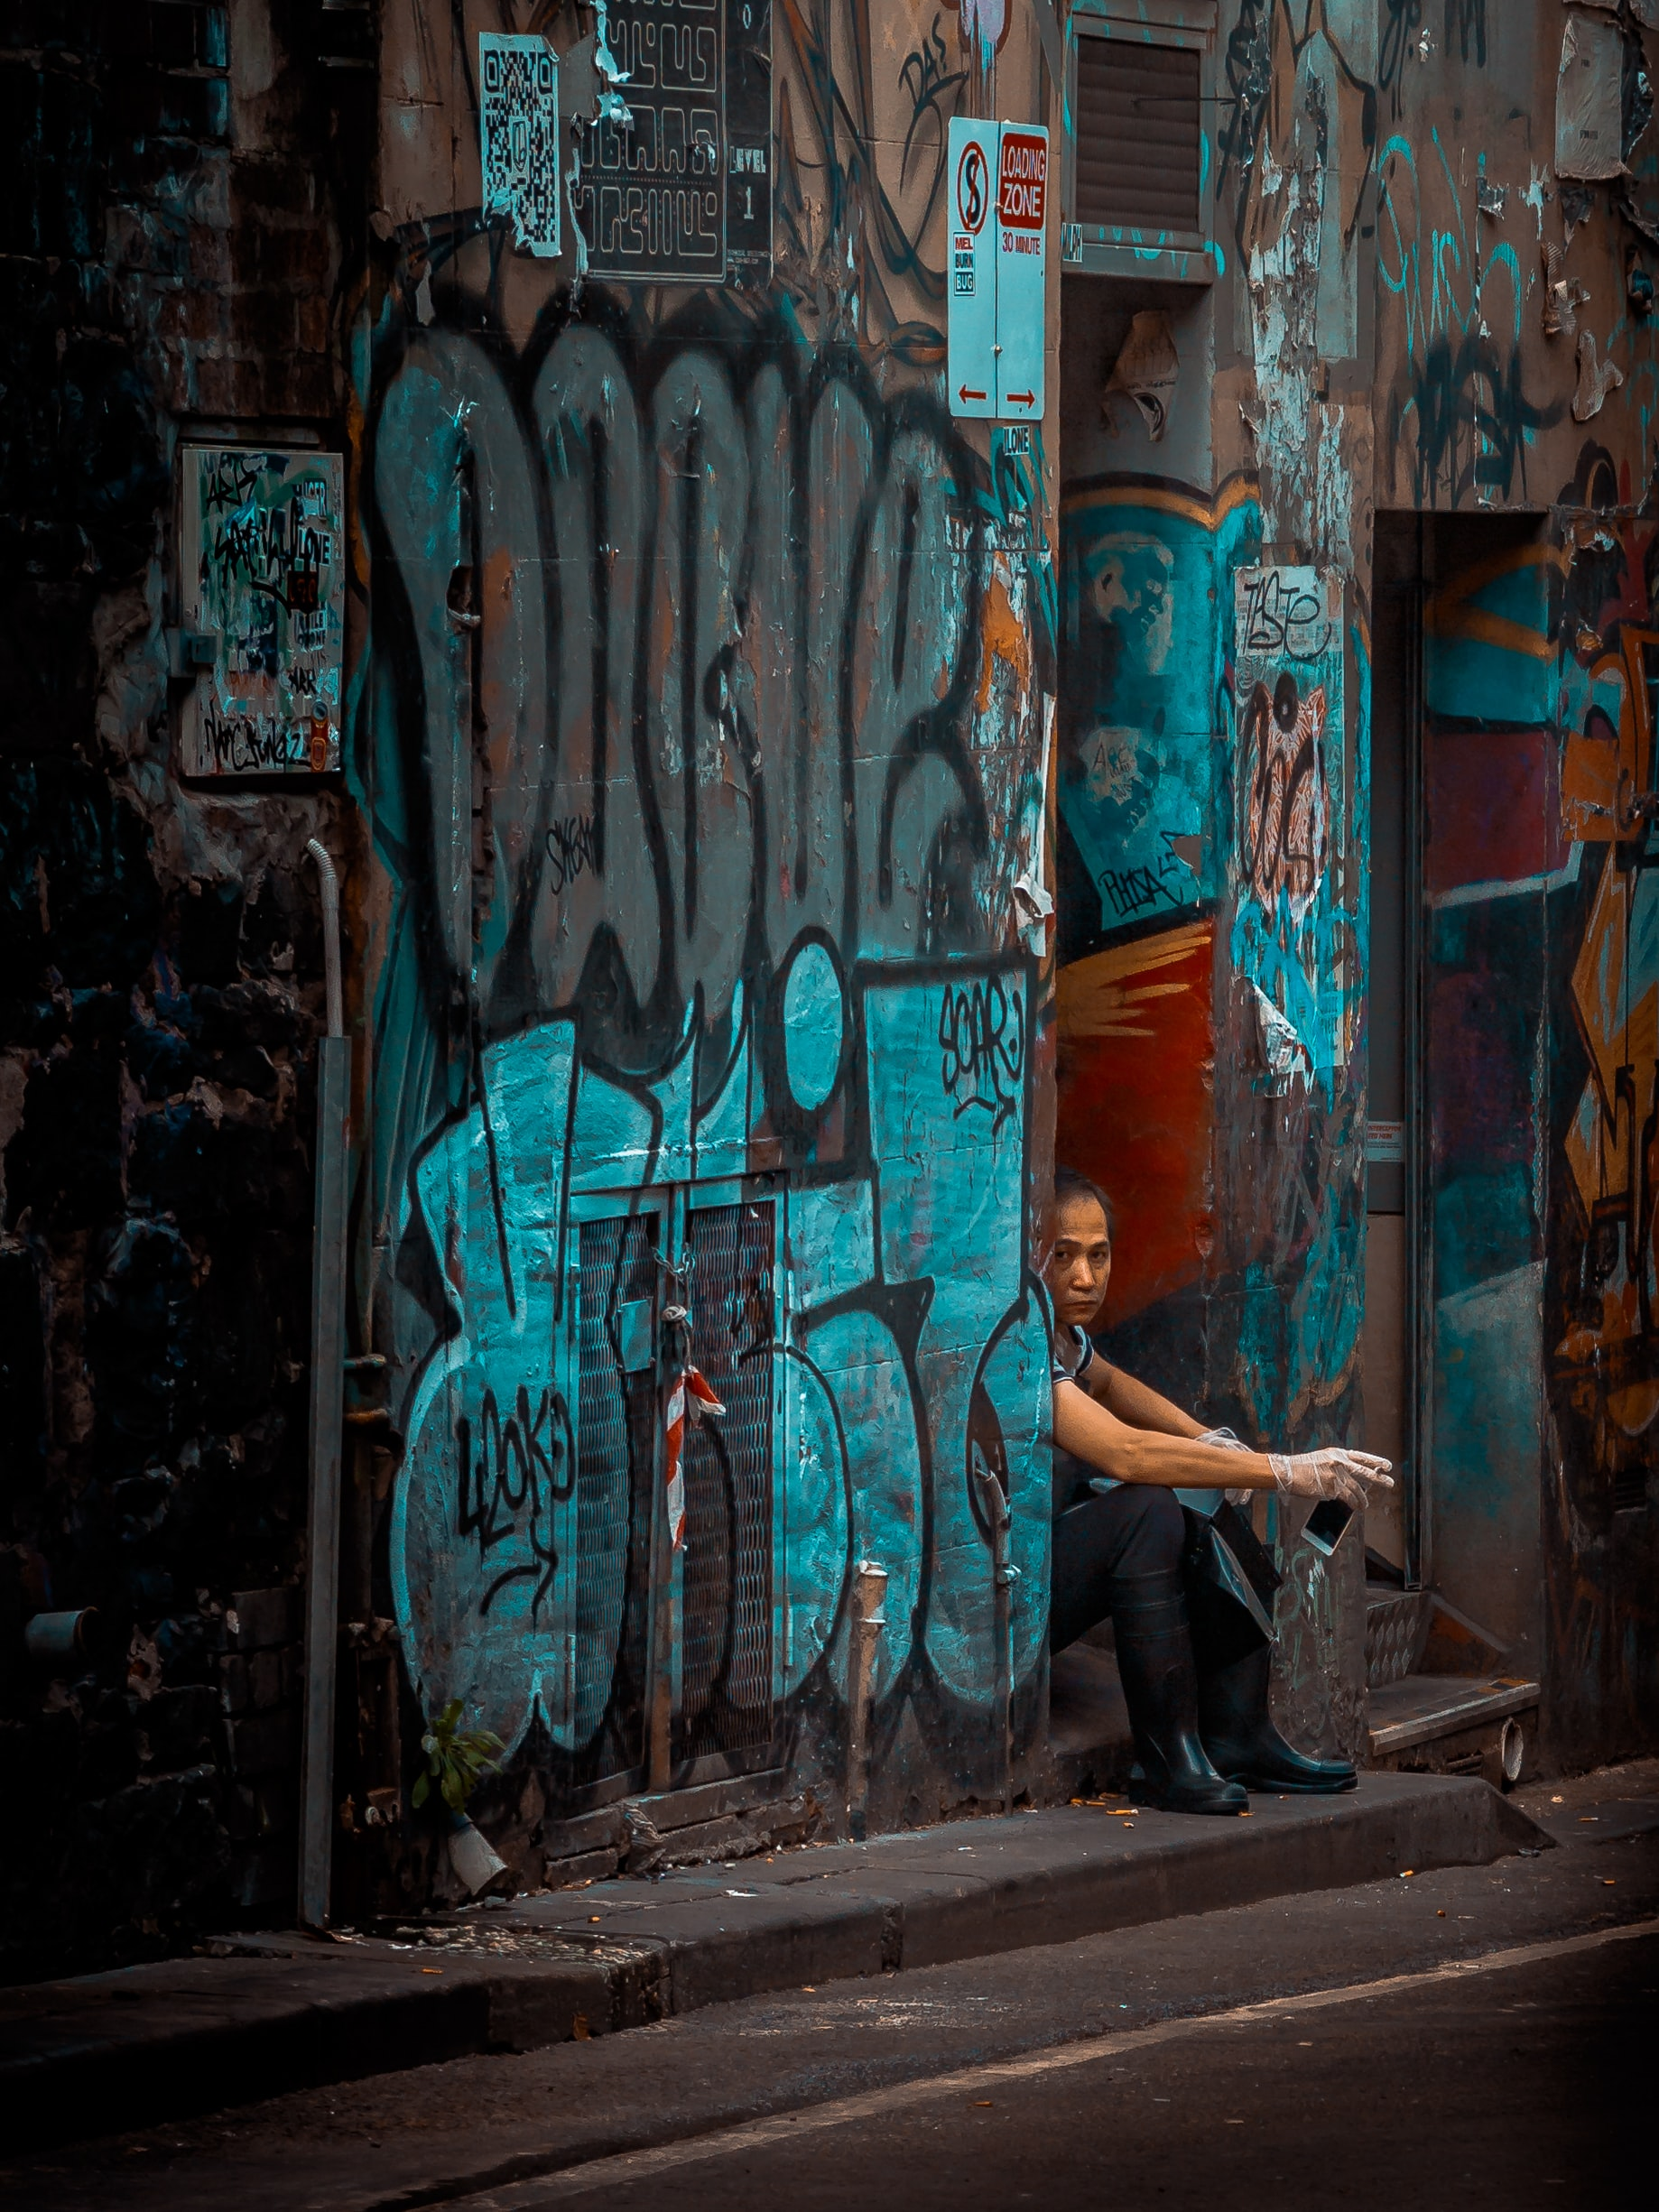 Woman sitting in doorway smoking with blue colored graffiti covered walls in Melbourne alley